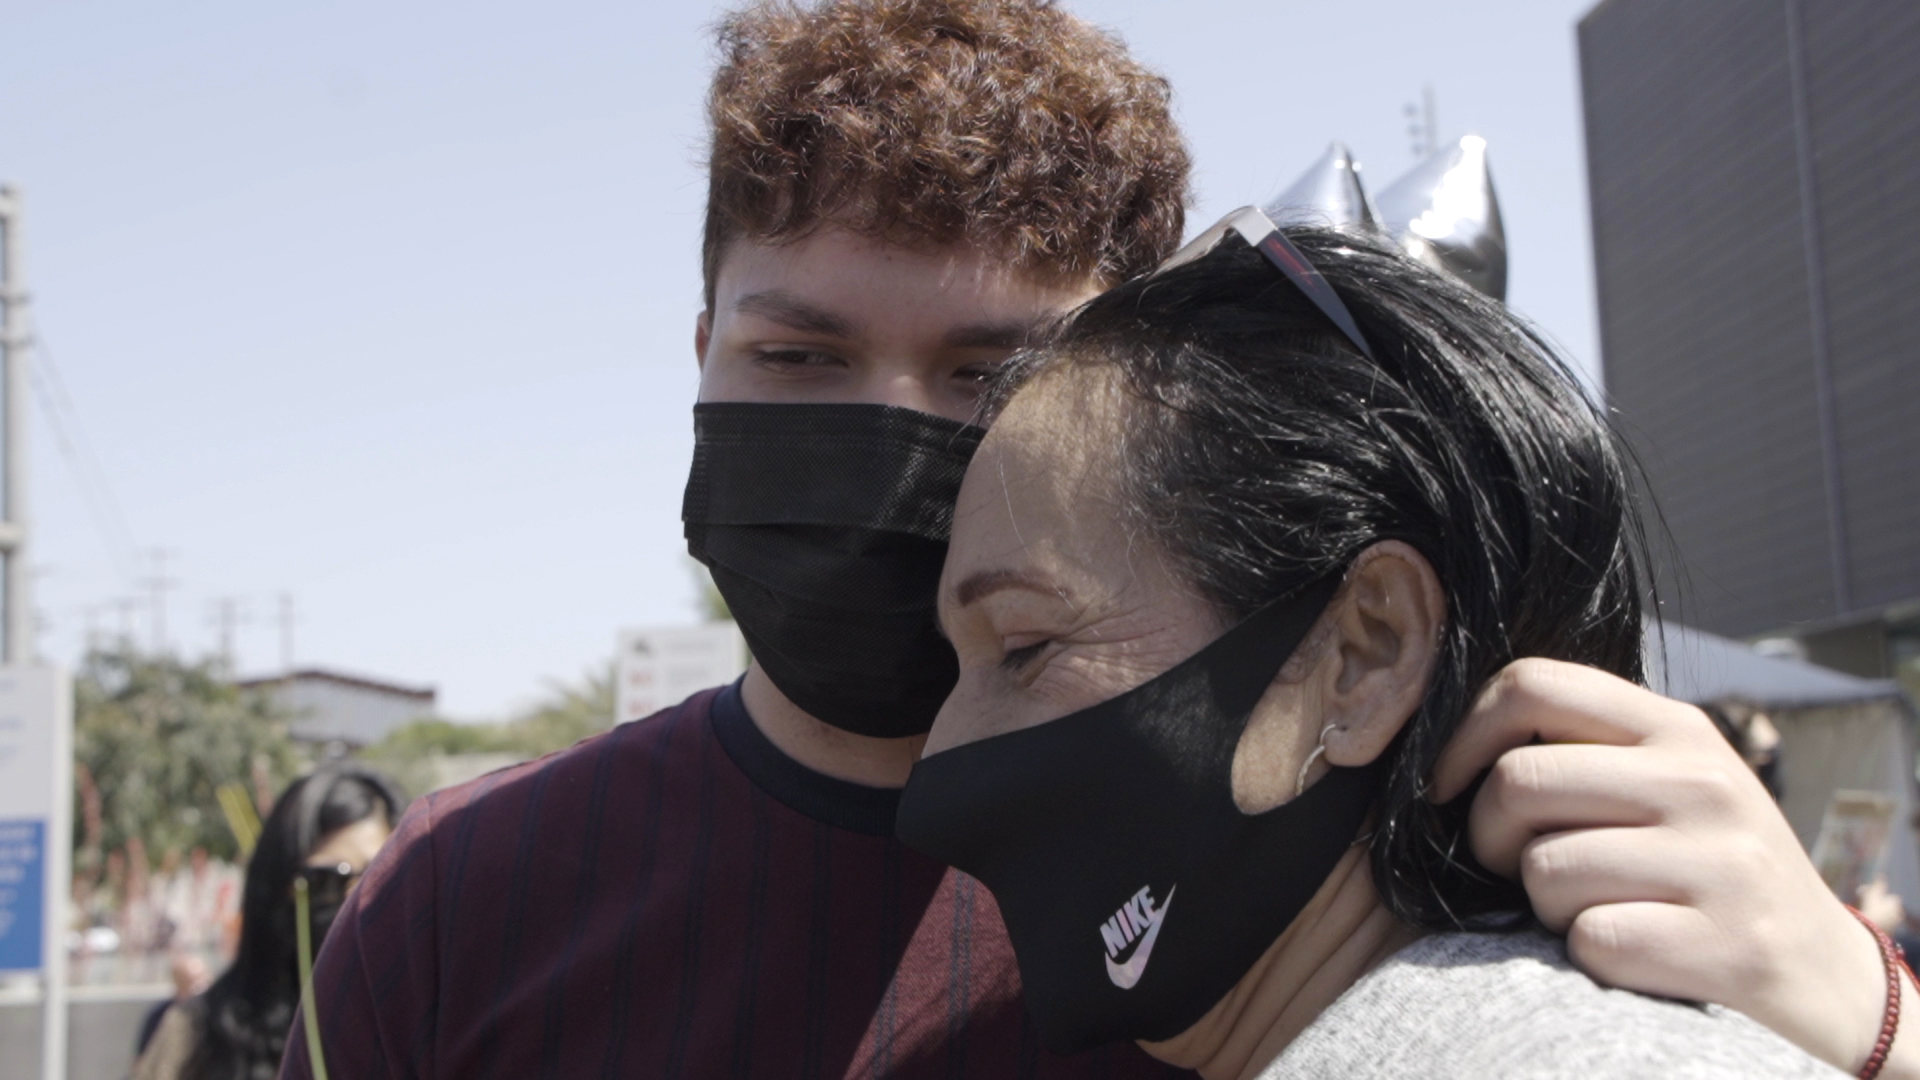 A mom and son sobbed as they reunited at the border after 3 years apart